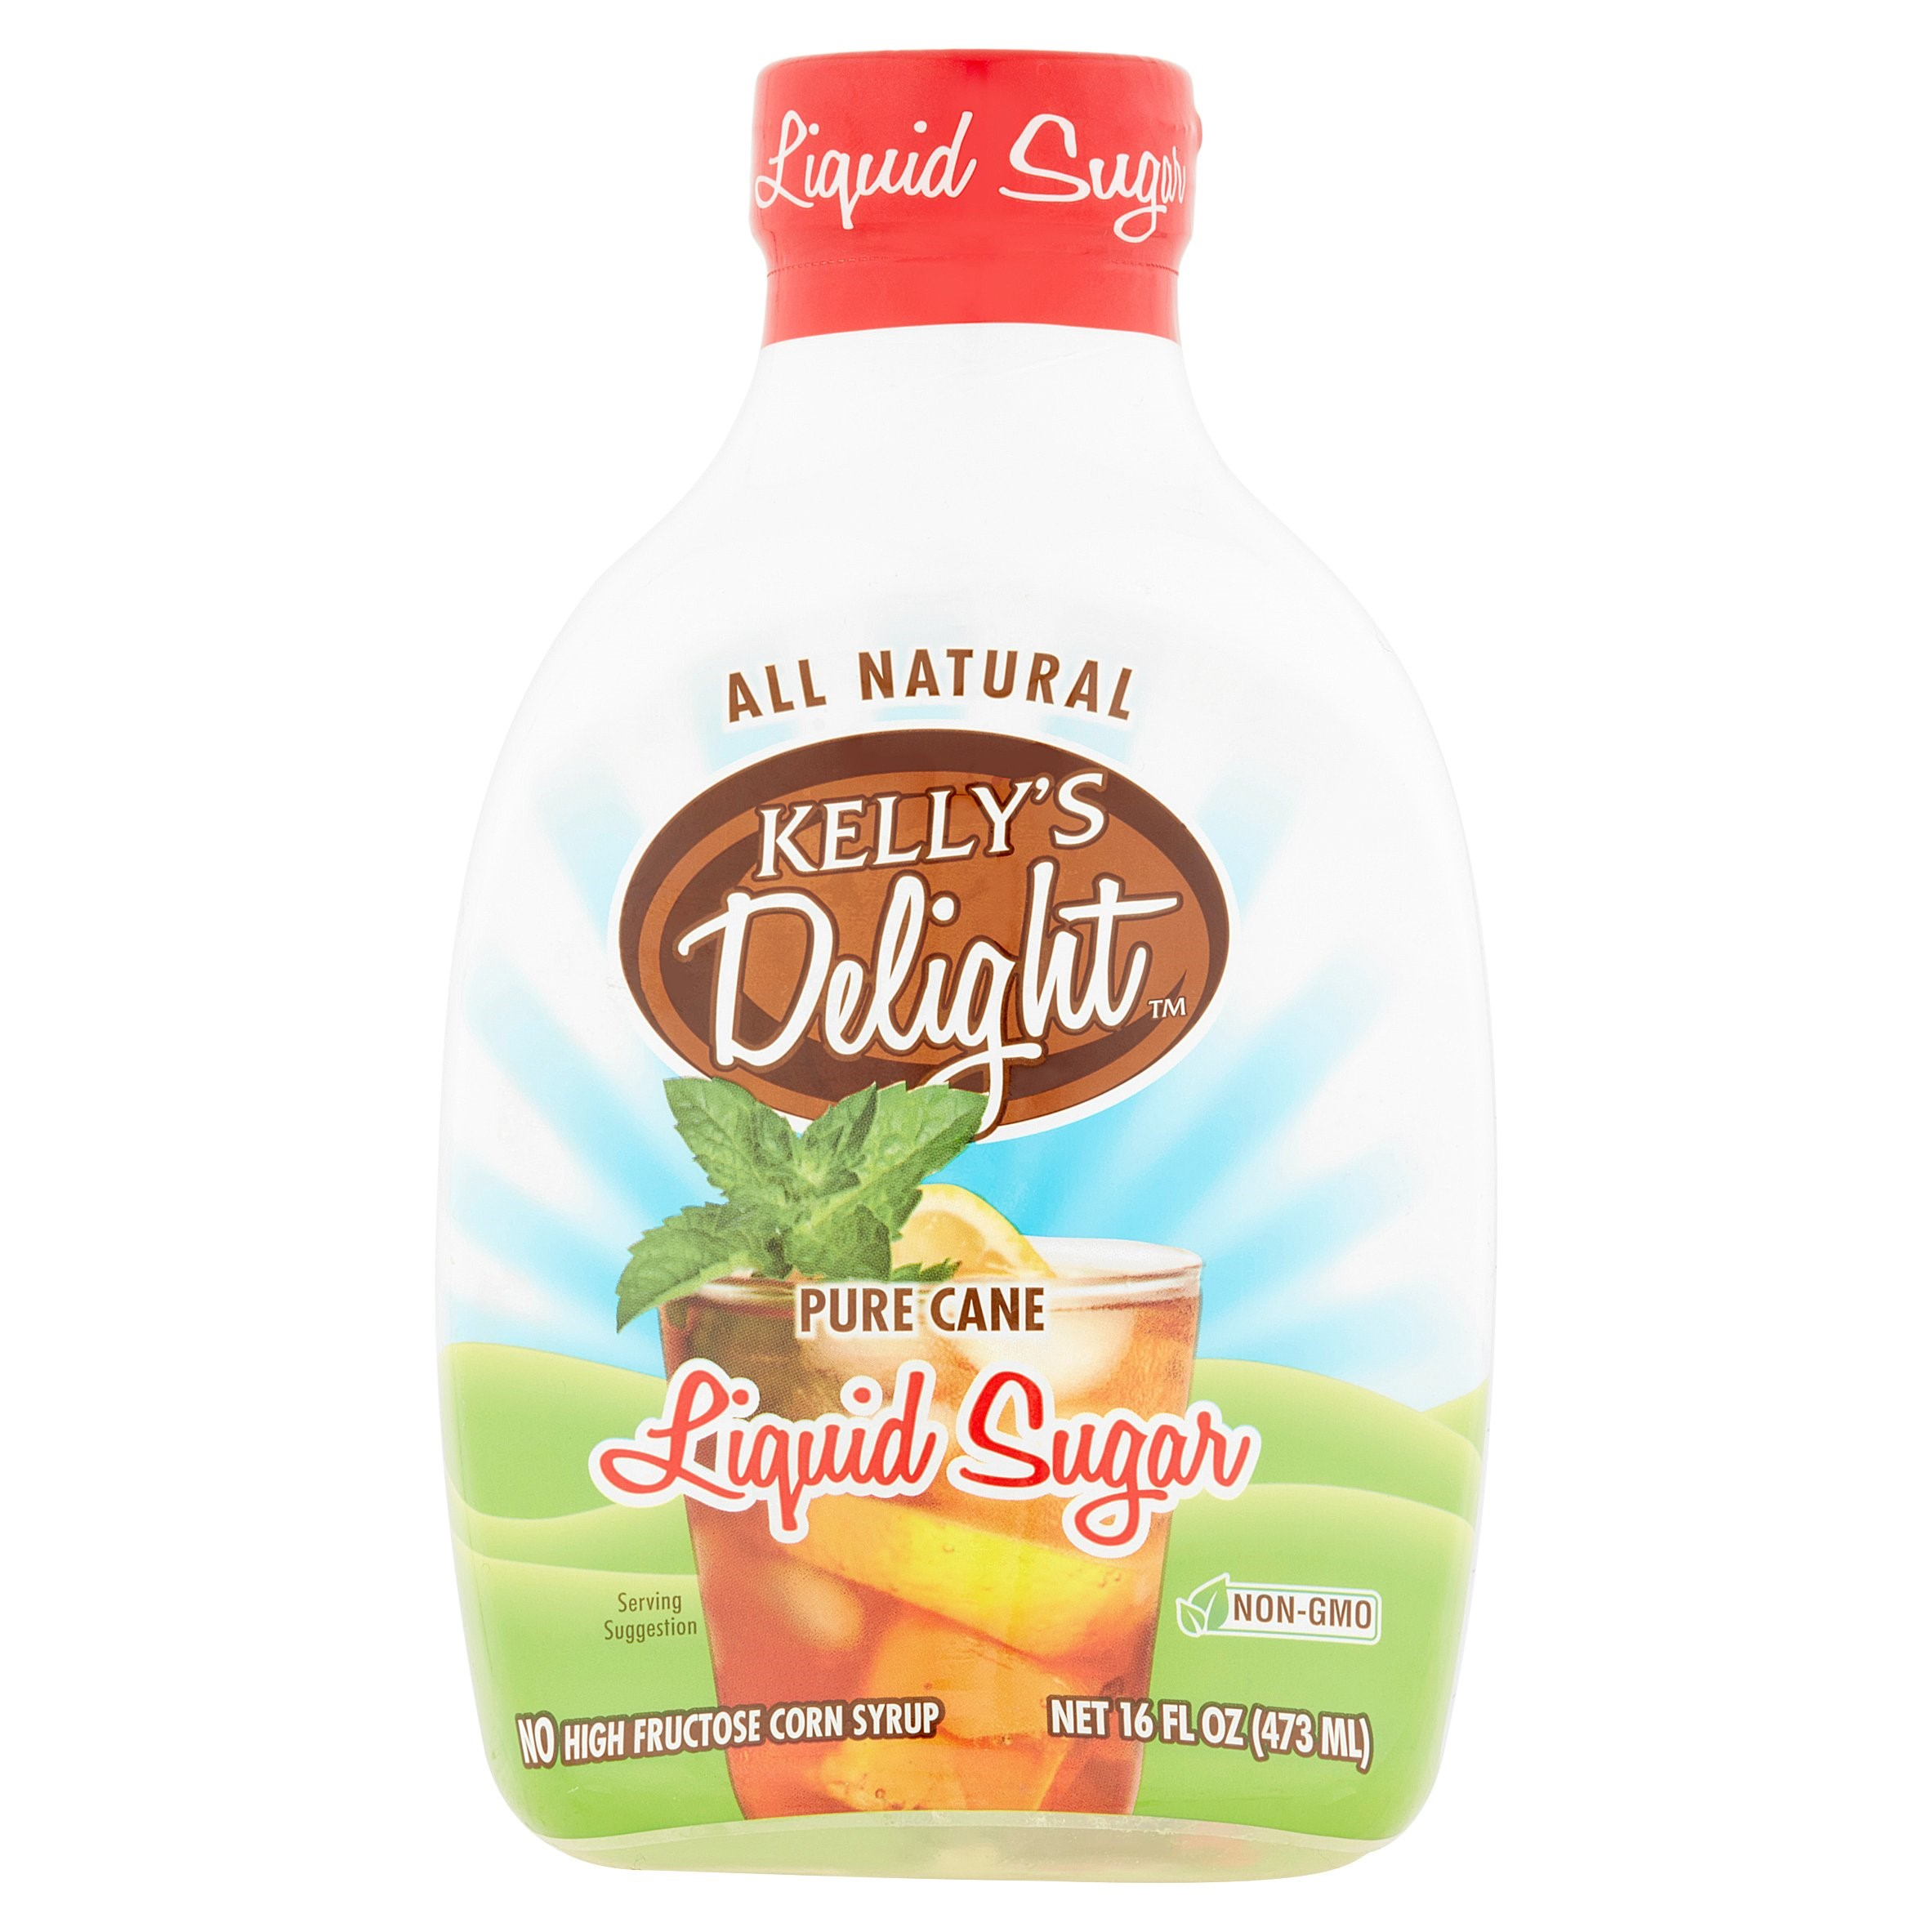 Kelly's Delight Pure Cane Liquid Sugar, 16 fl oz